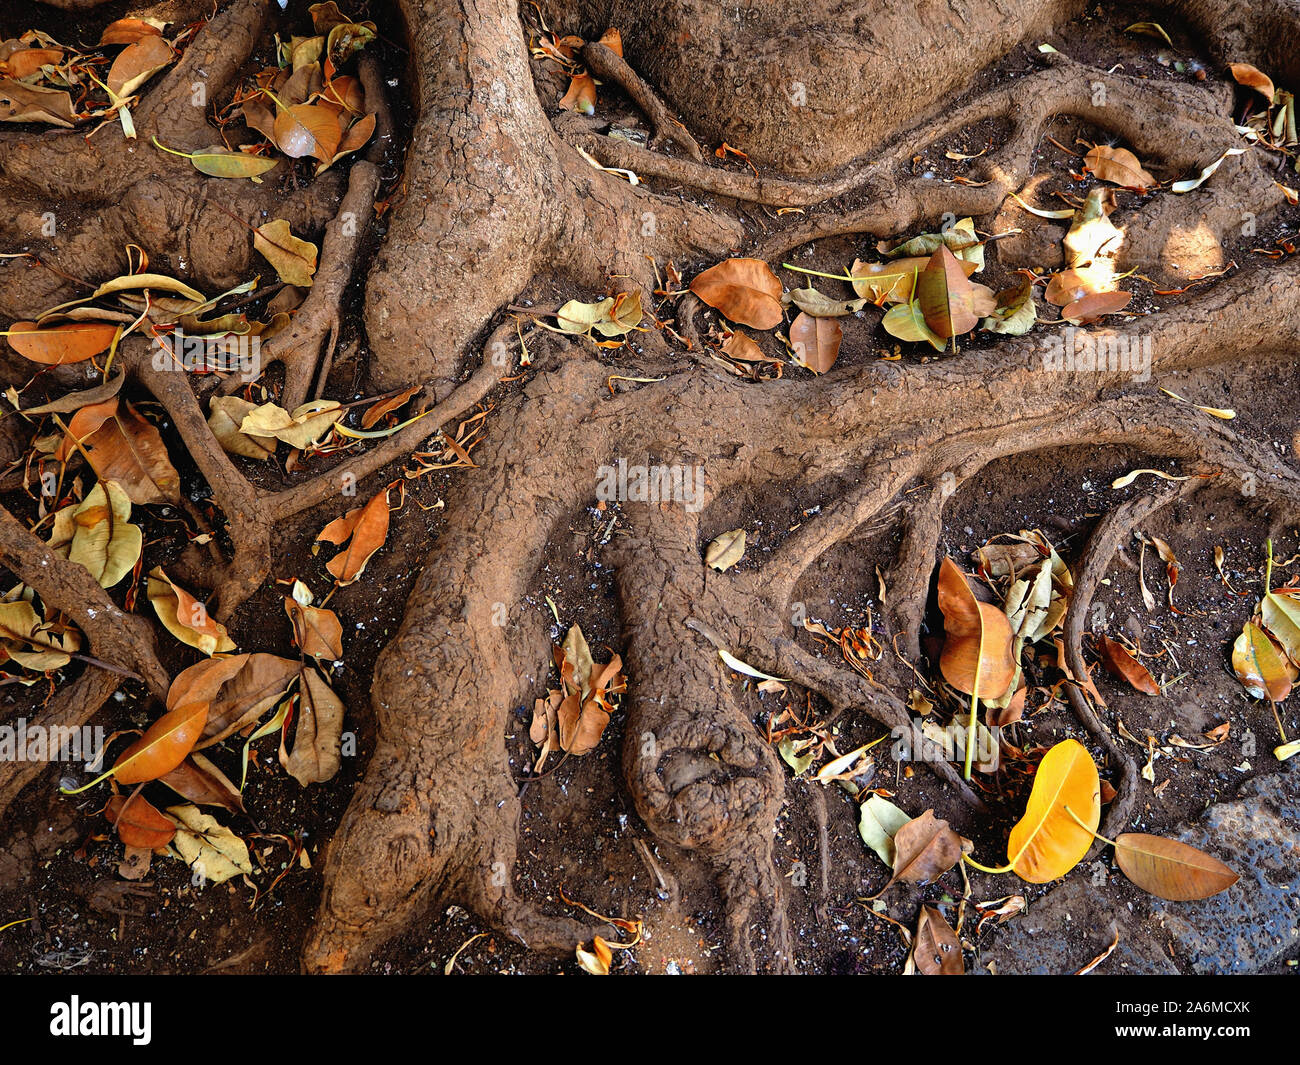 the thick roots of a canarian rubber tree photographed from above with yellow dried leaves lying around them. Detailed picture in earth tones. Stock Photo